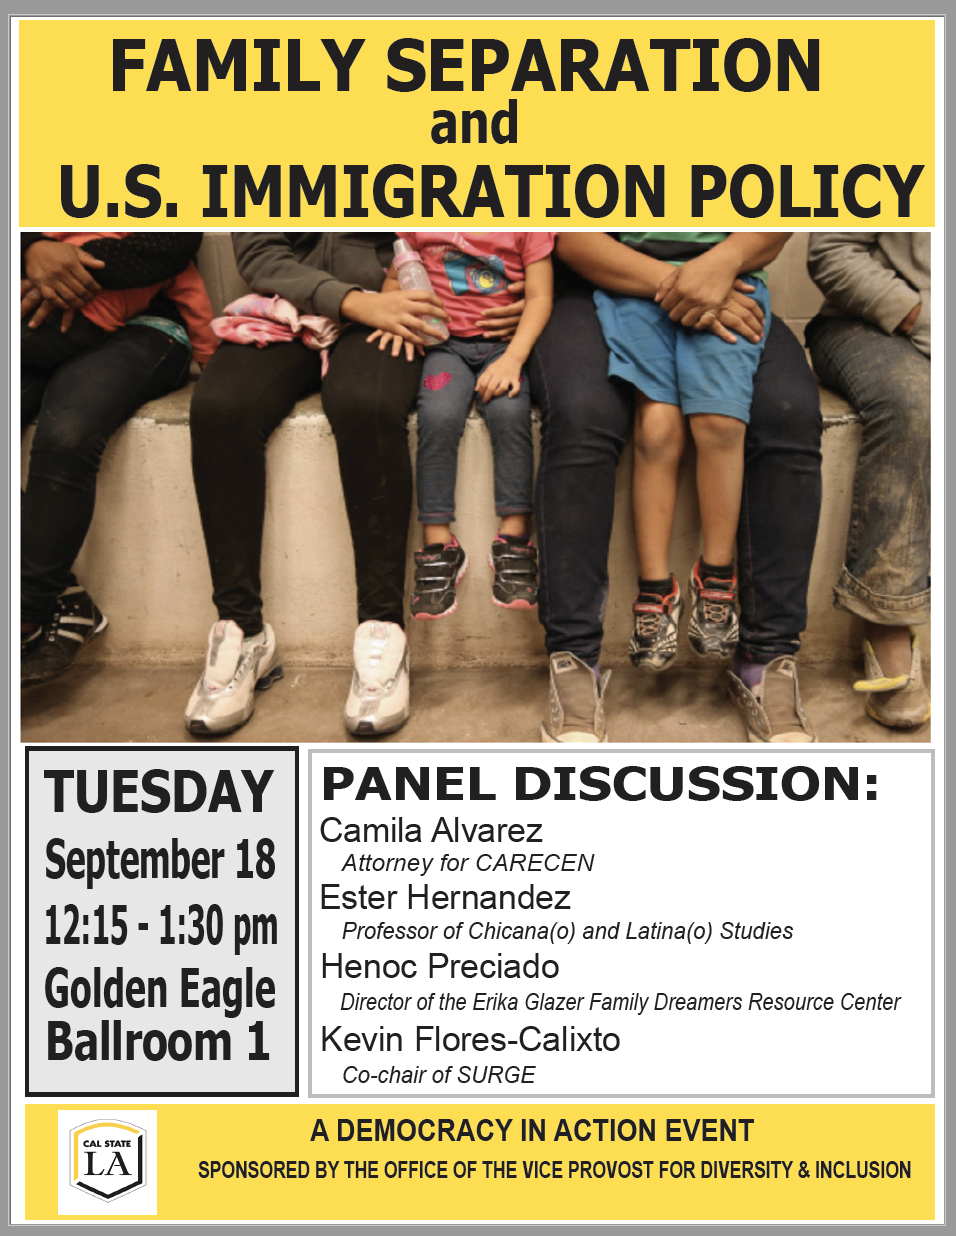 You're Invited to a talk on Family Separation and U.S. Immigration Policy on Tuesday, September 18 from 12:15 pm to 1:30 p.m. in Golden eagle Ballroom 1